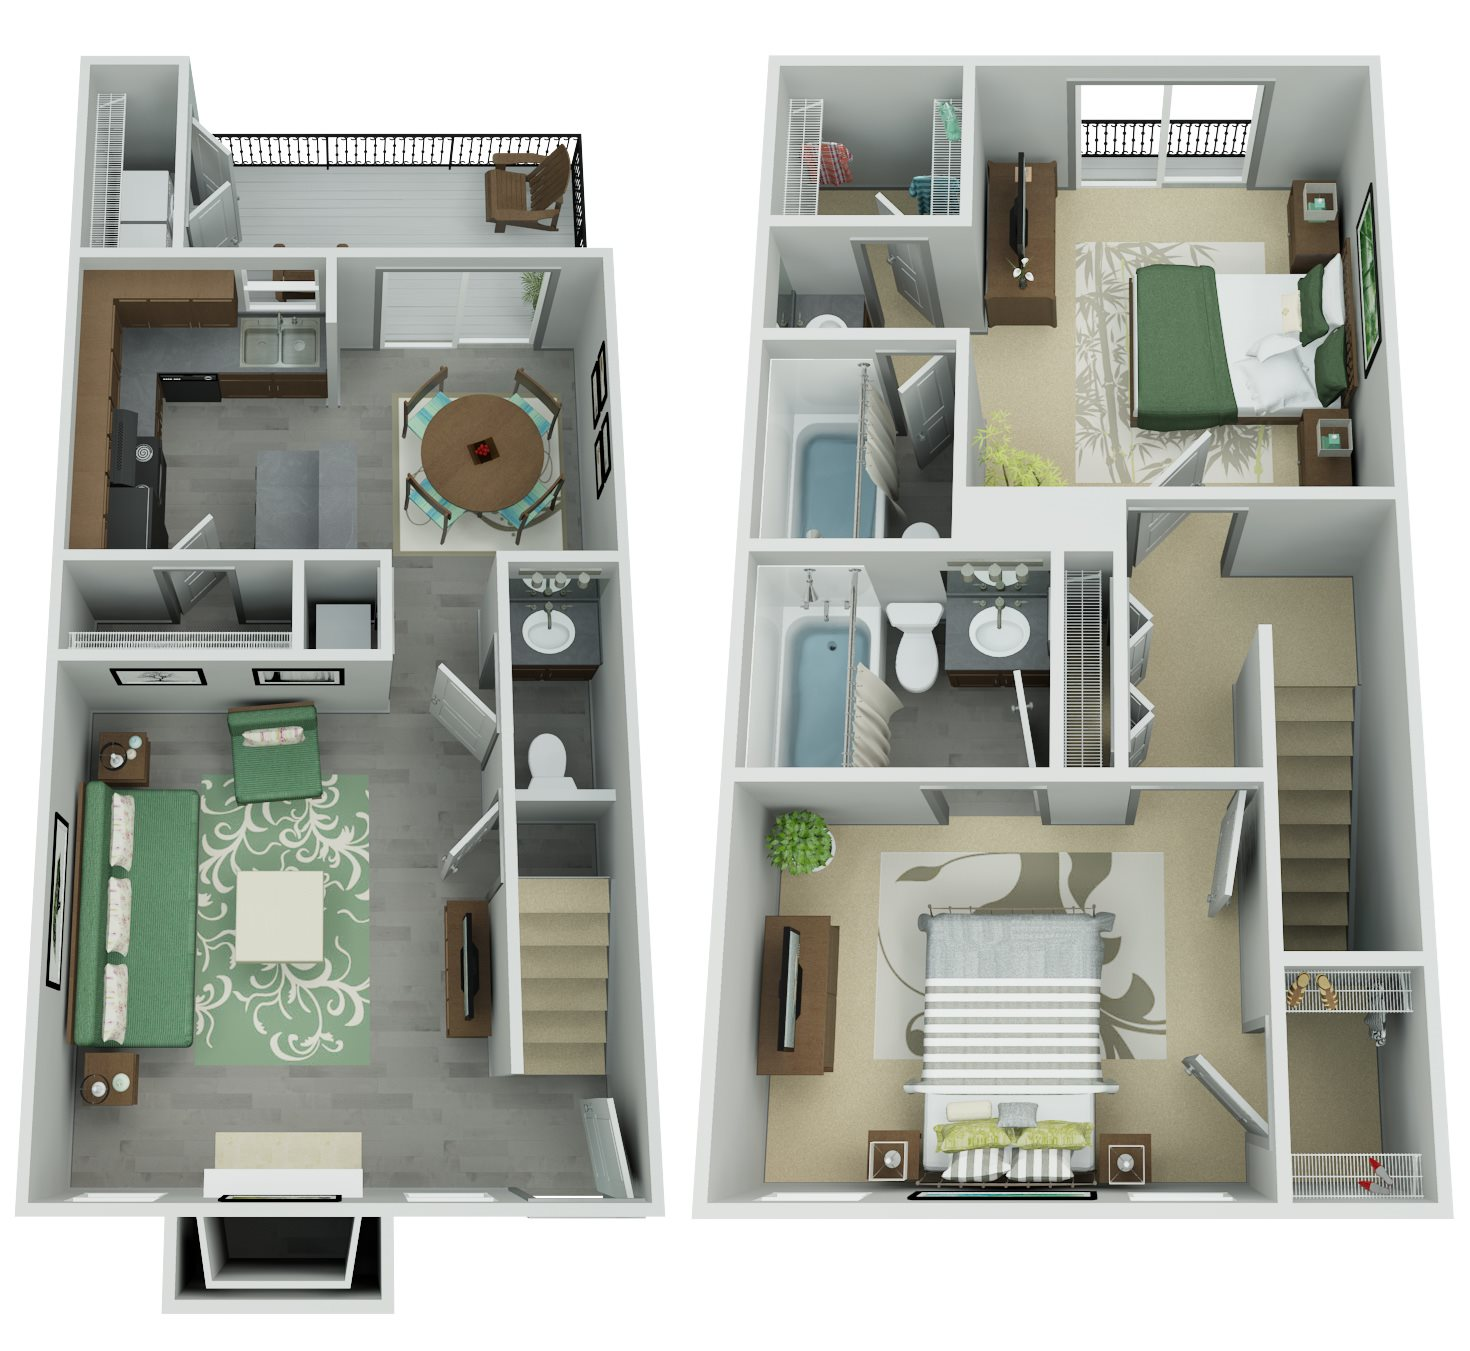 Trailpoint at The Woodlands Apartment Homes - 2 Bedroom 2.5 Bath Apartment